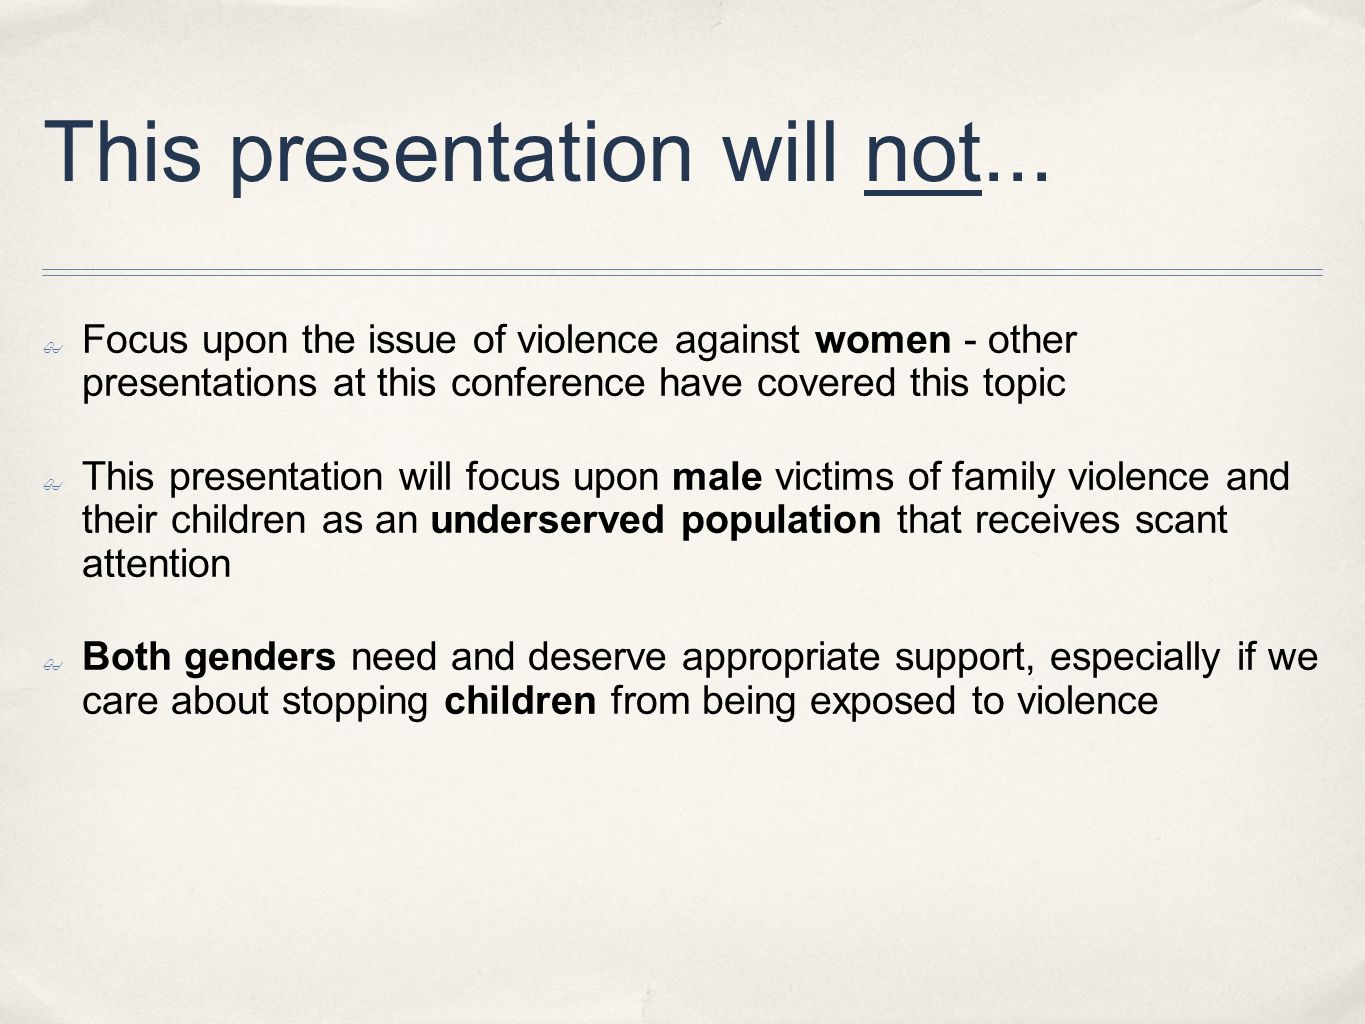 This presentation will not...